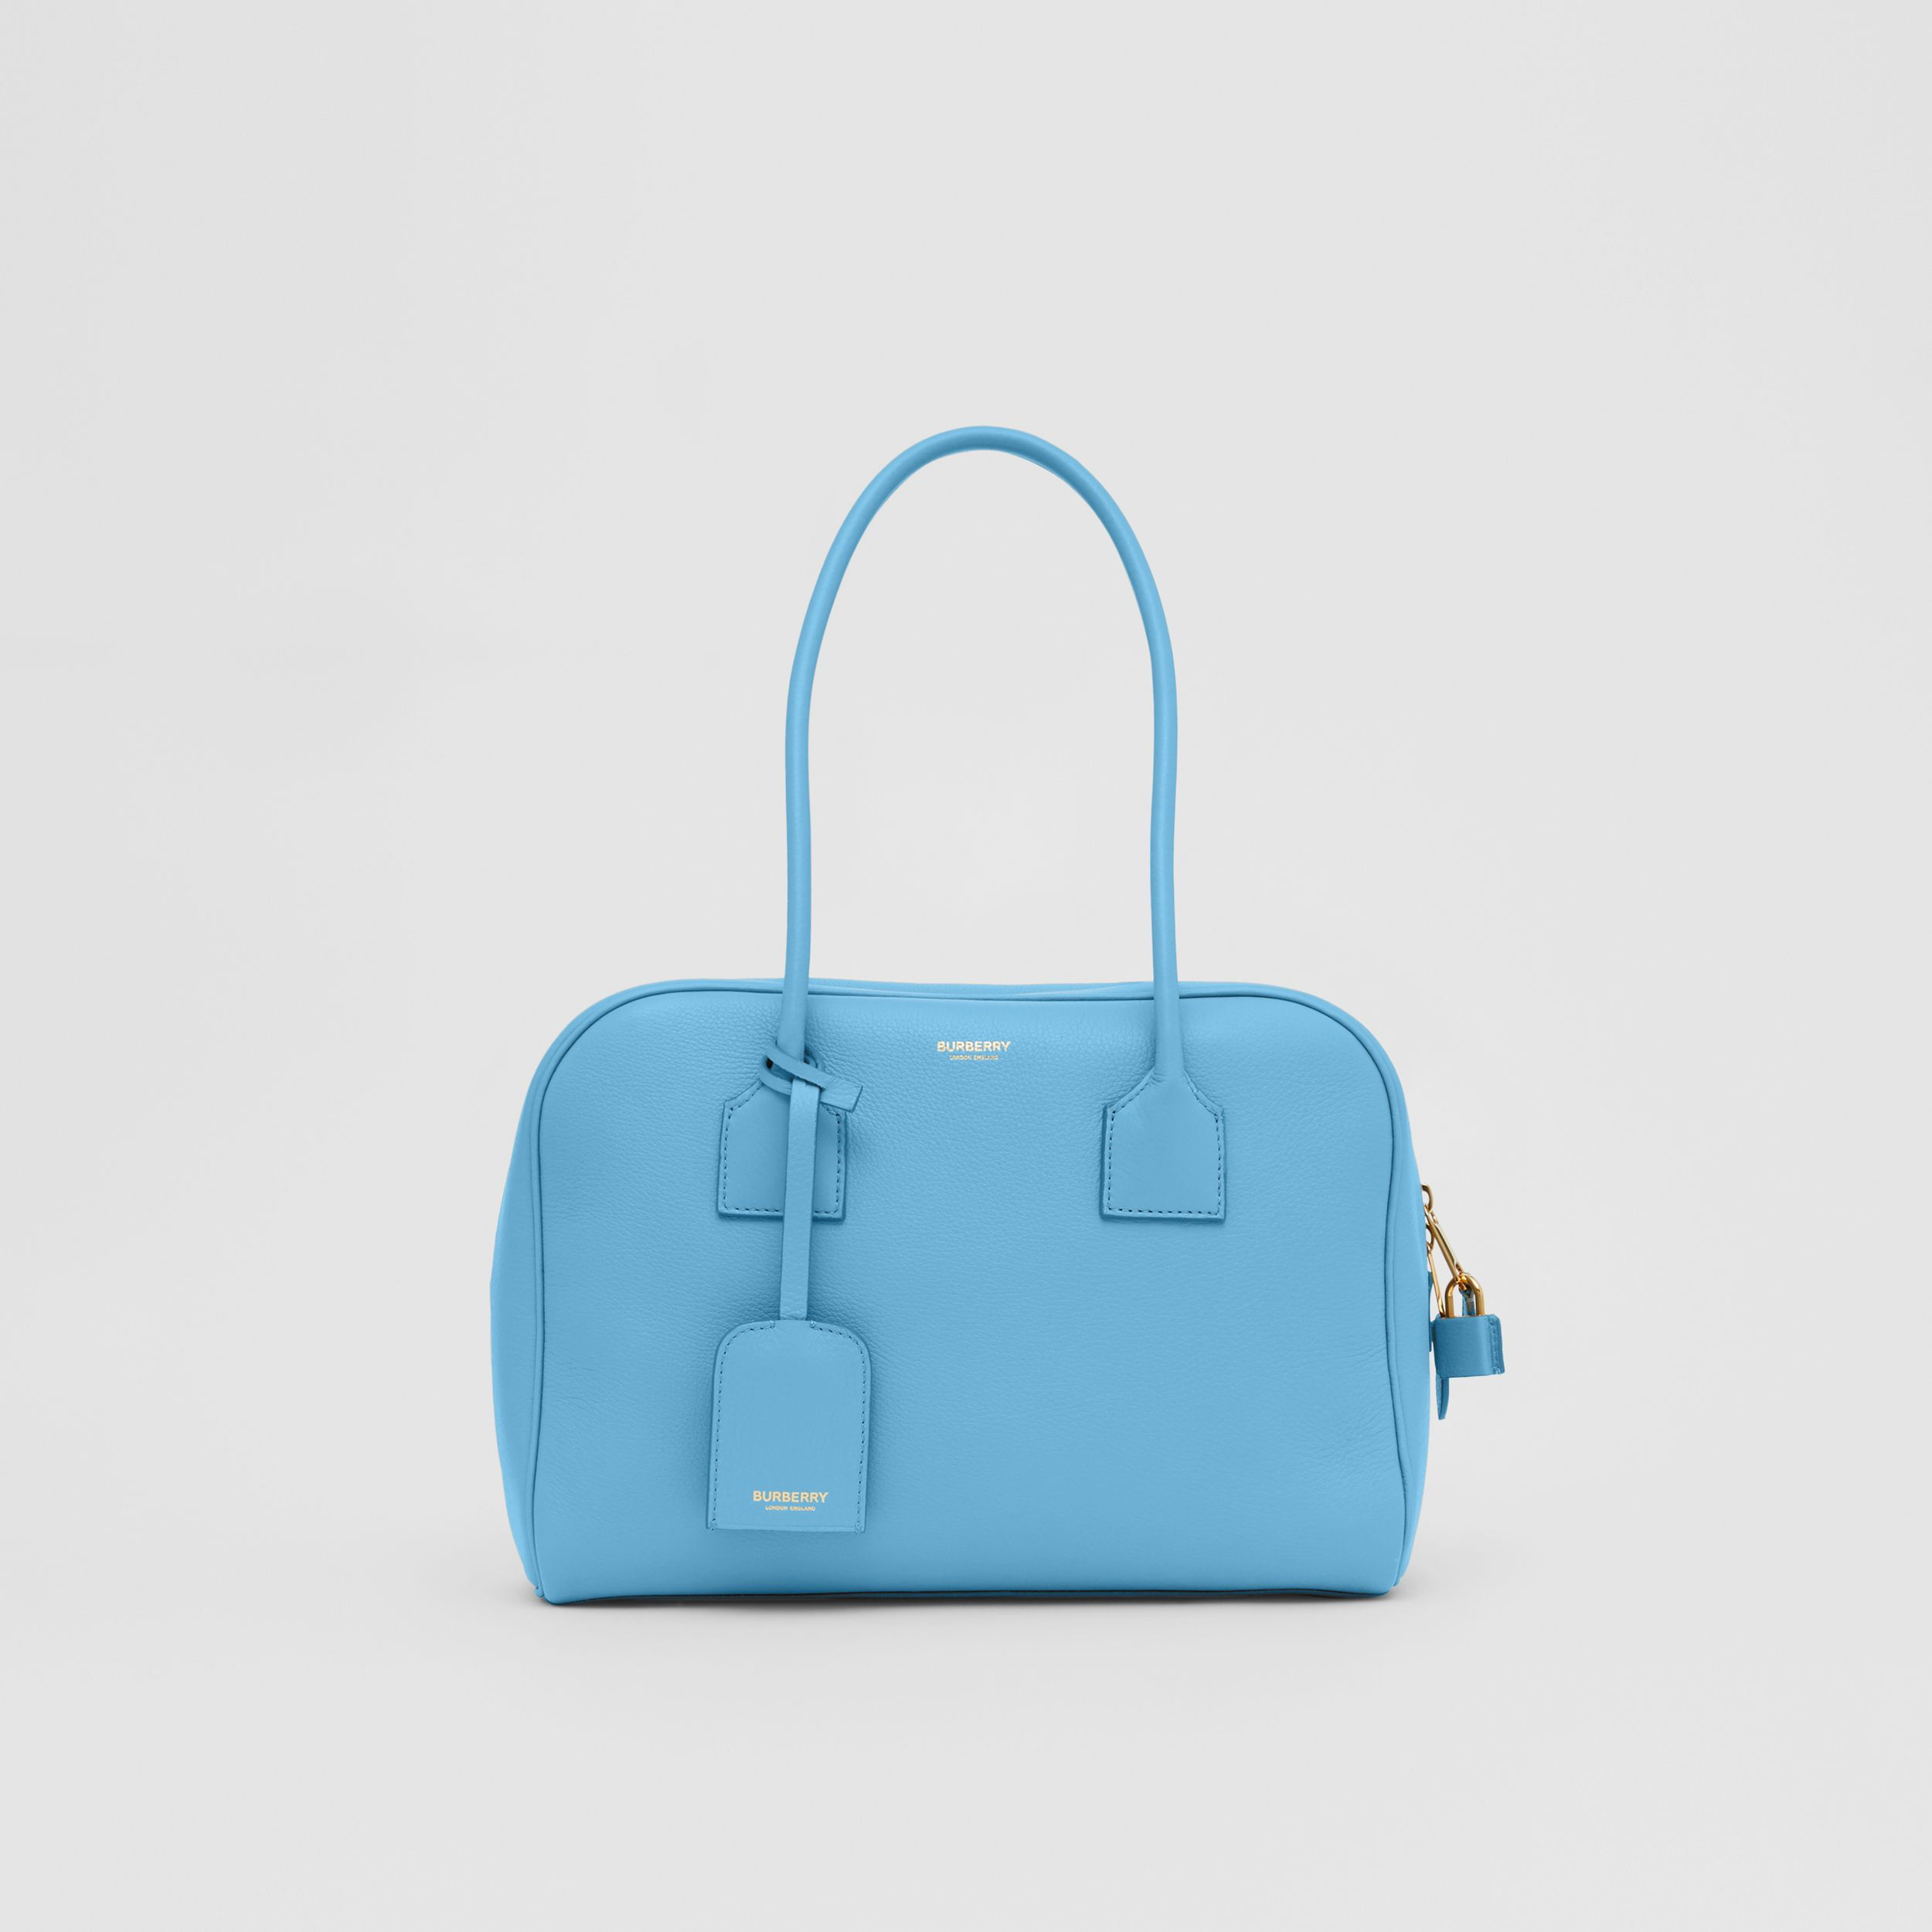 Medium Leather Half Cube Bag in Blue Topaz - Women | Burberry - 1